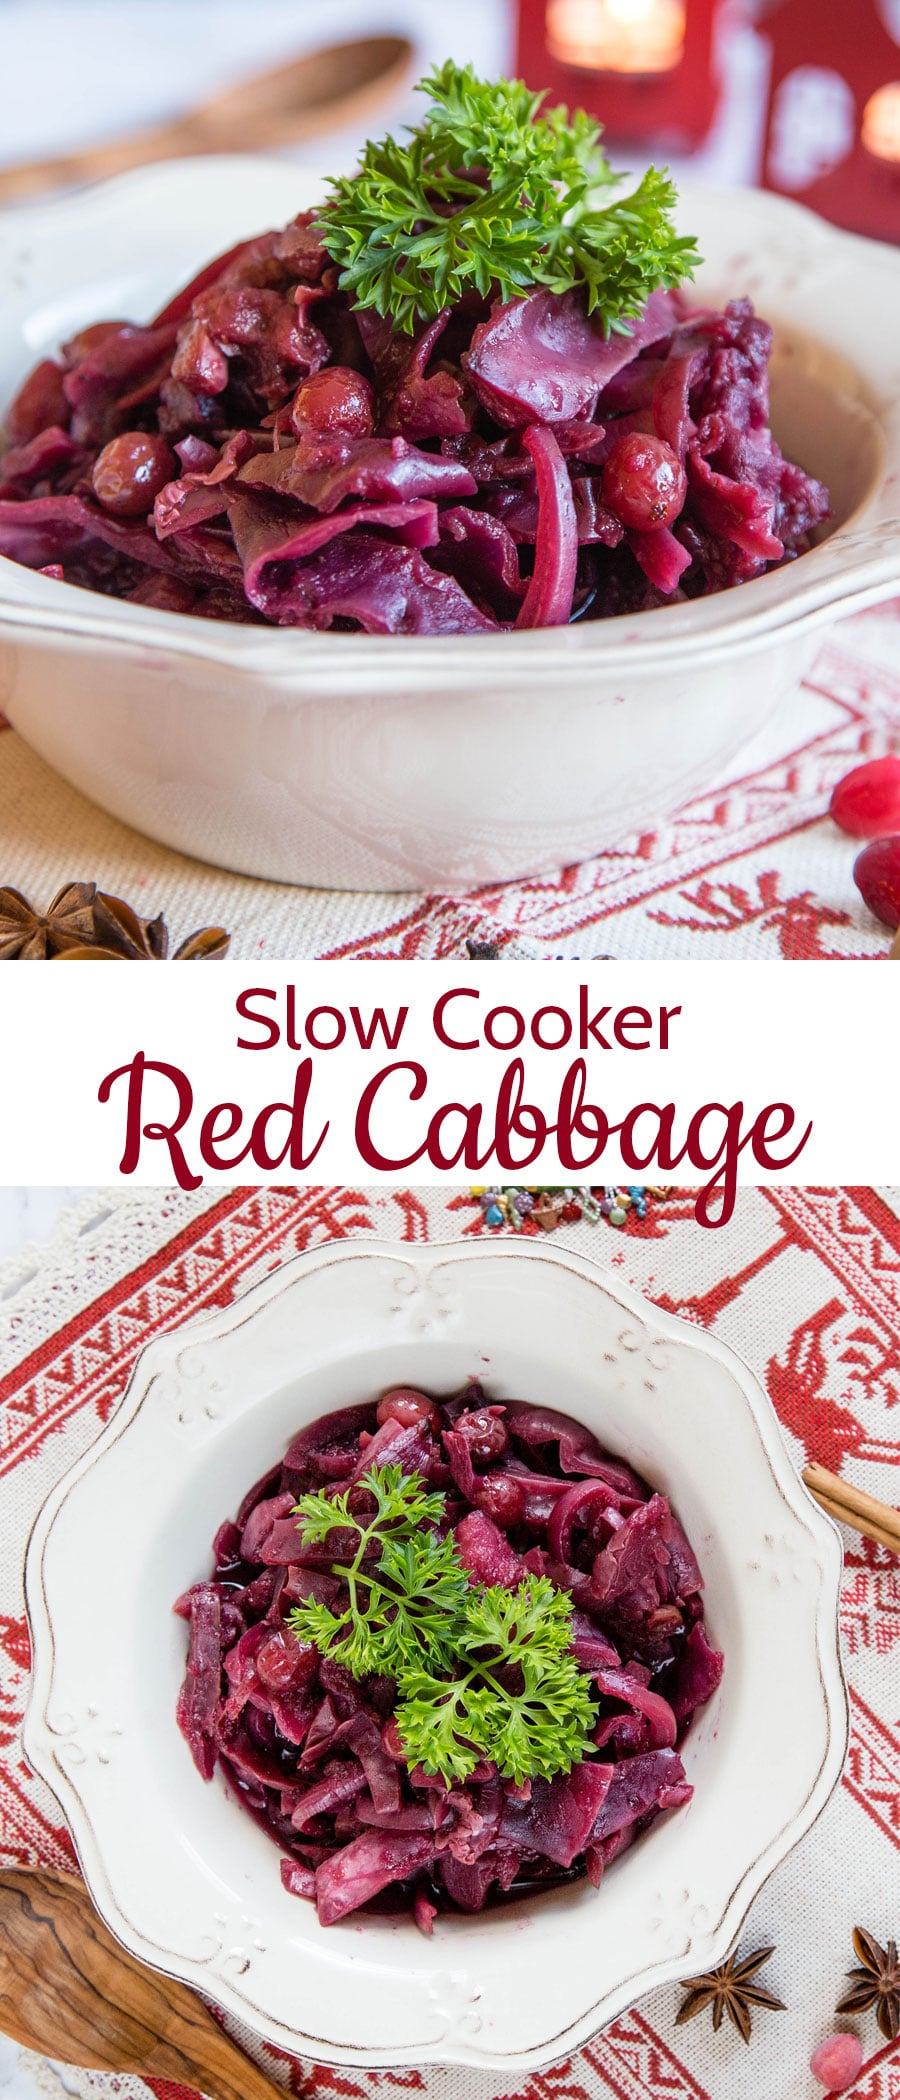 Slow cooker red cabbage close up in bowl